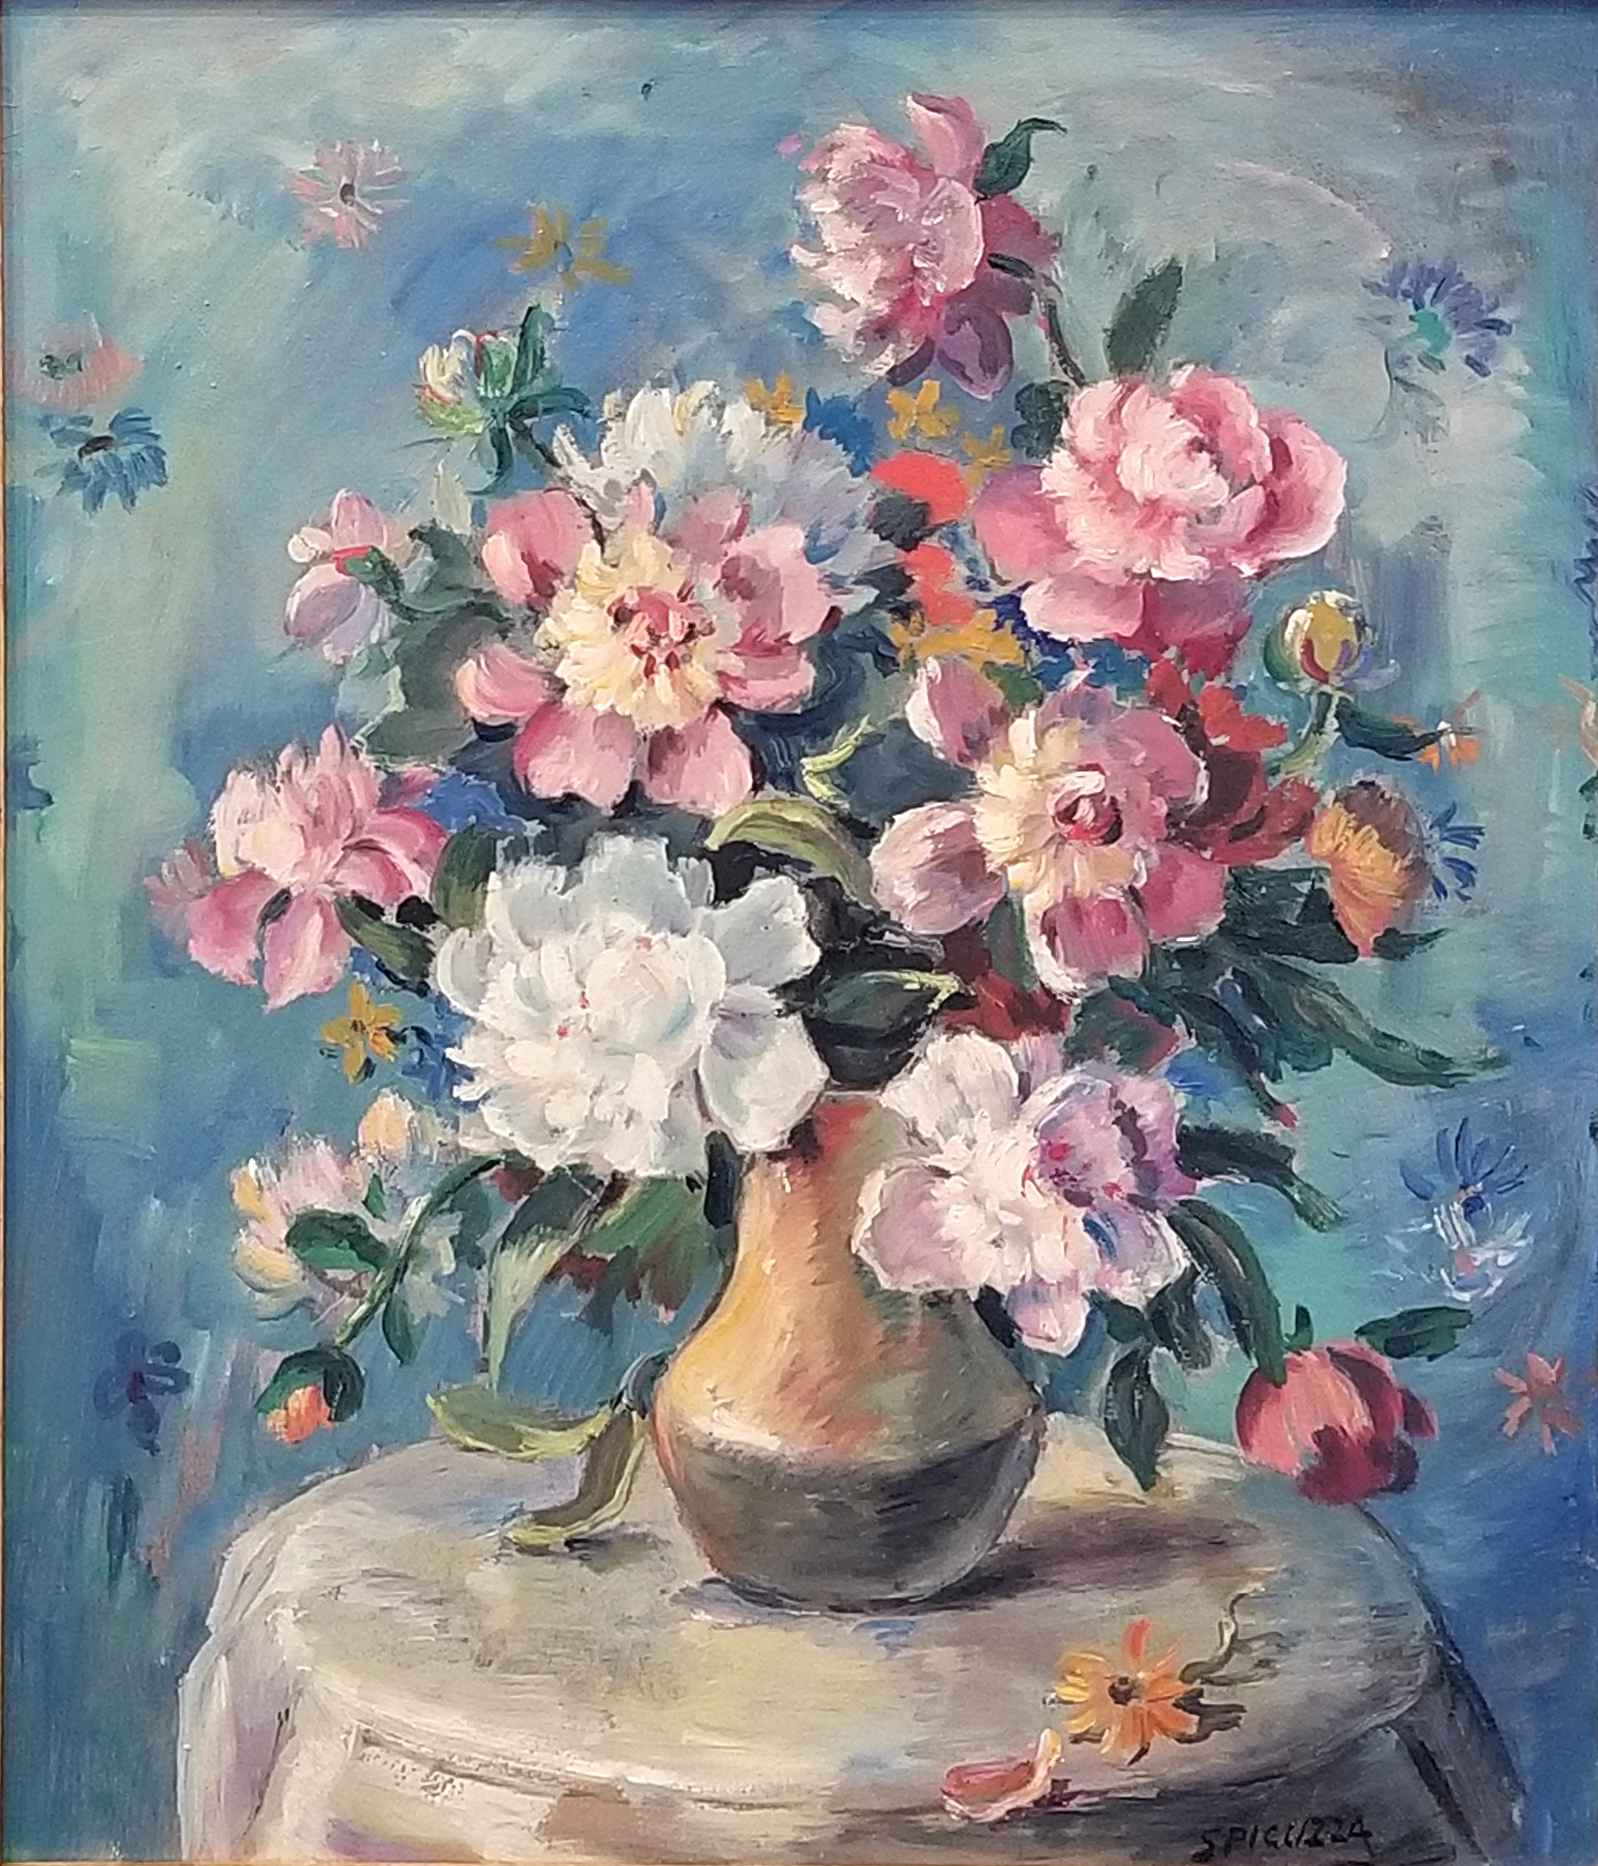 Untitled (Flowers in ... by Mr. Francesco Spicuzza - Masterpiece Online